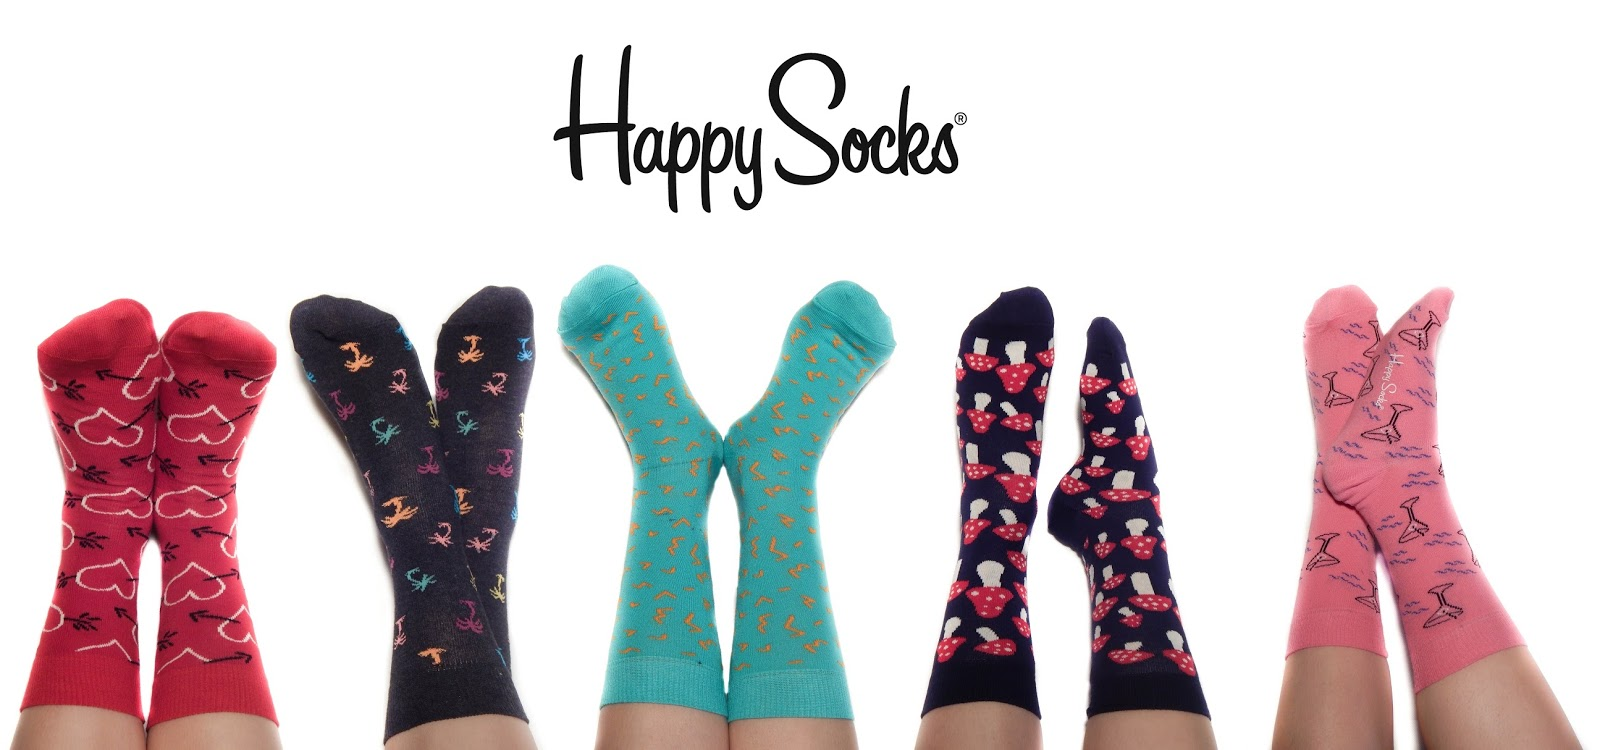 happysocks happy socks sweden skarpety skarpetki mushrooms love palms coctails colorful gift